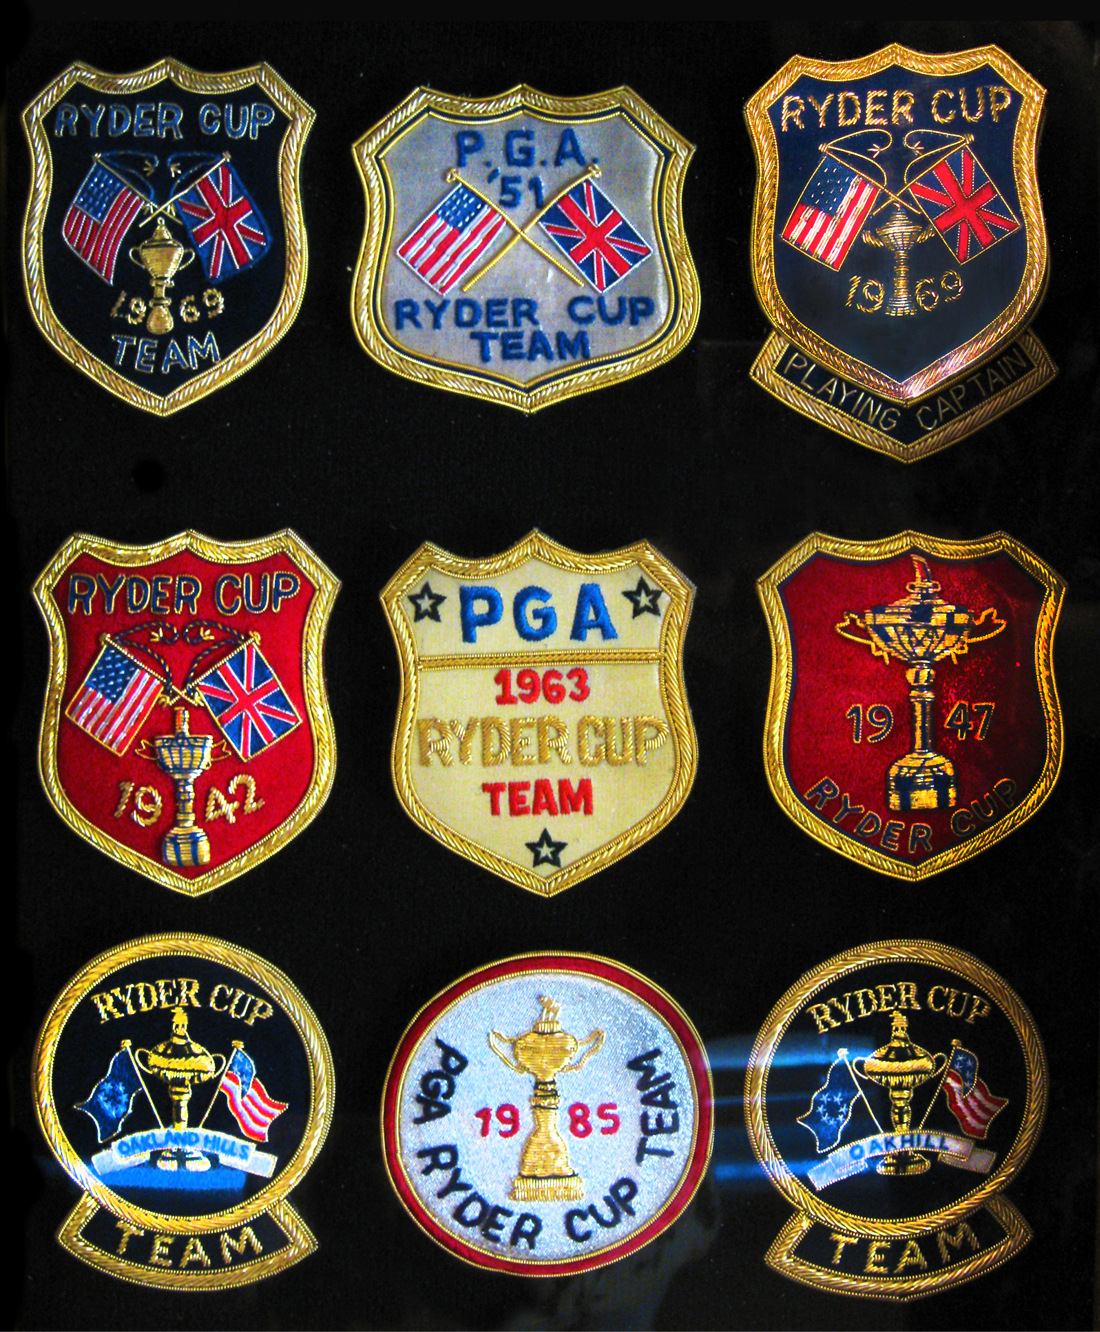 ryder cup crests|ryder cup blazer crests|the american heritage collection|the raleigh degeer amyx collection|ryder cup champions|